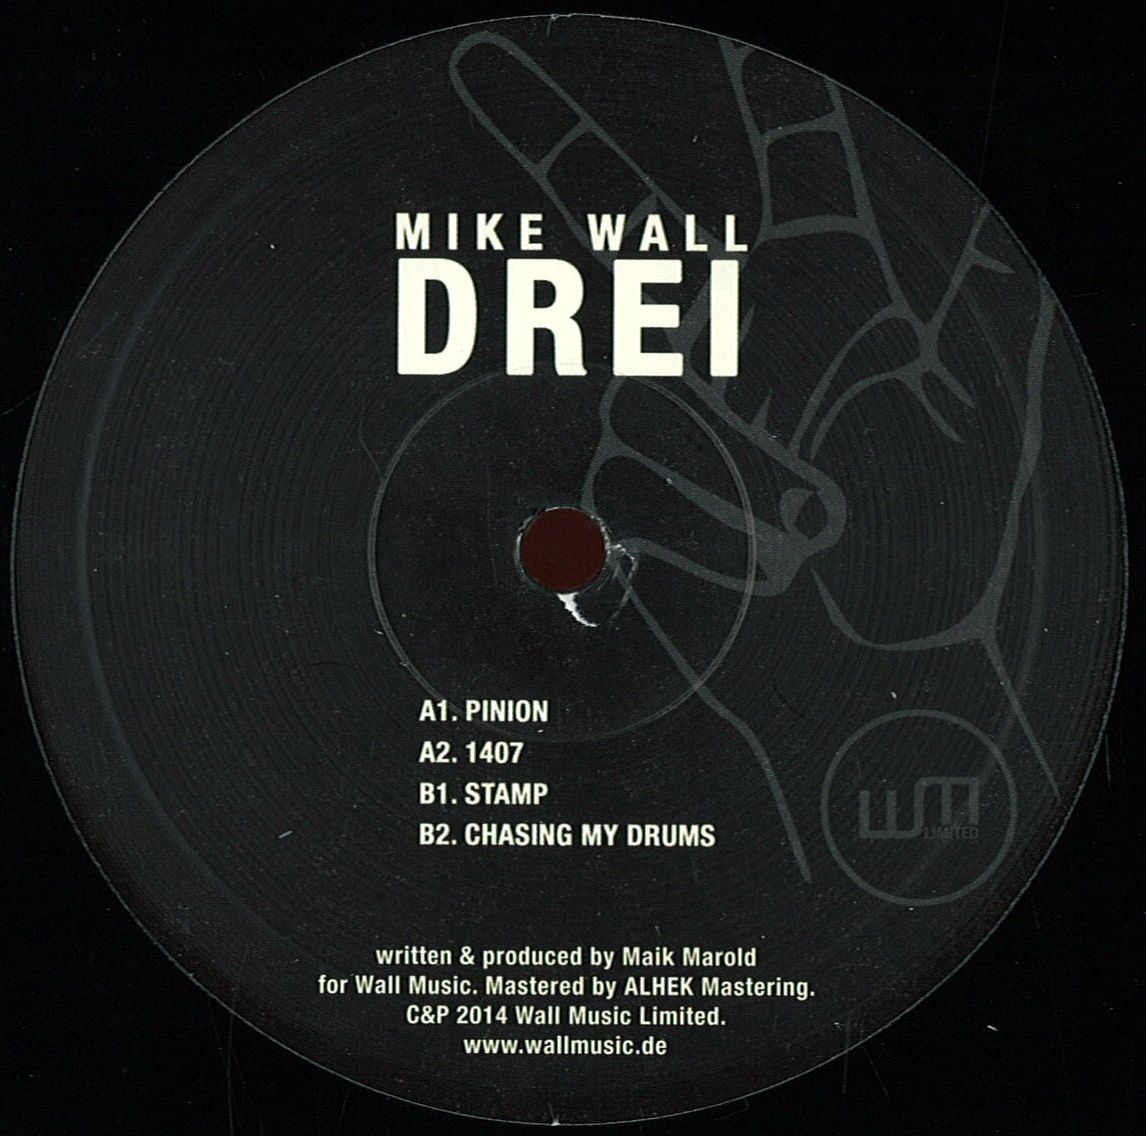 Mike Wall